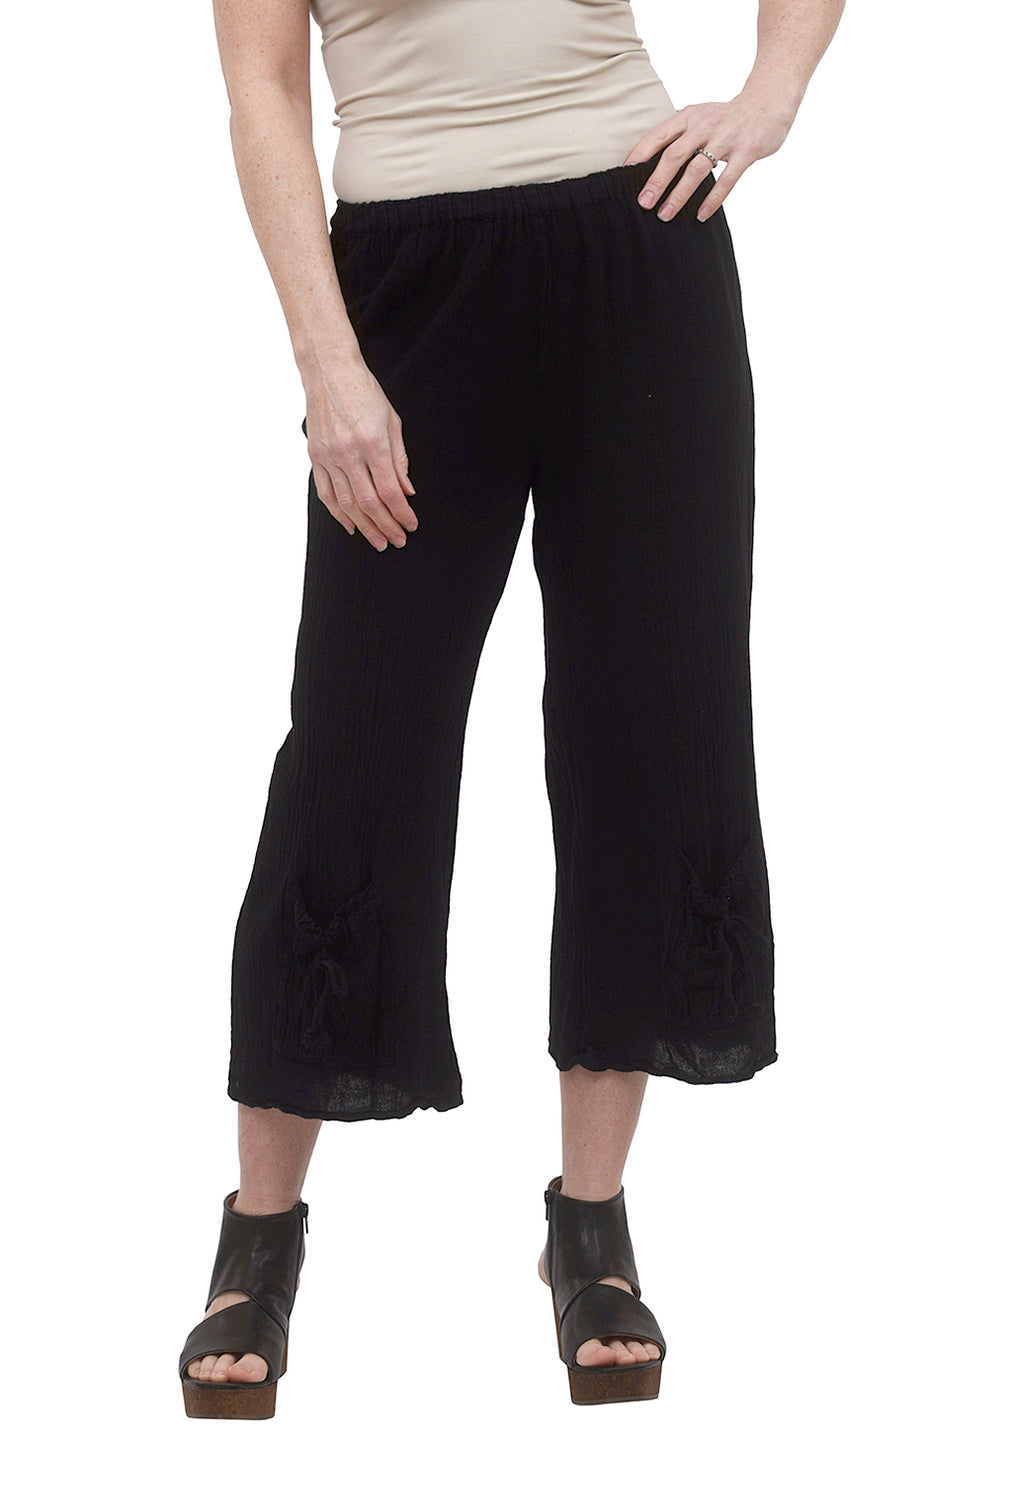 Sammy Capri Pant, Black